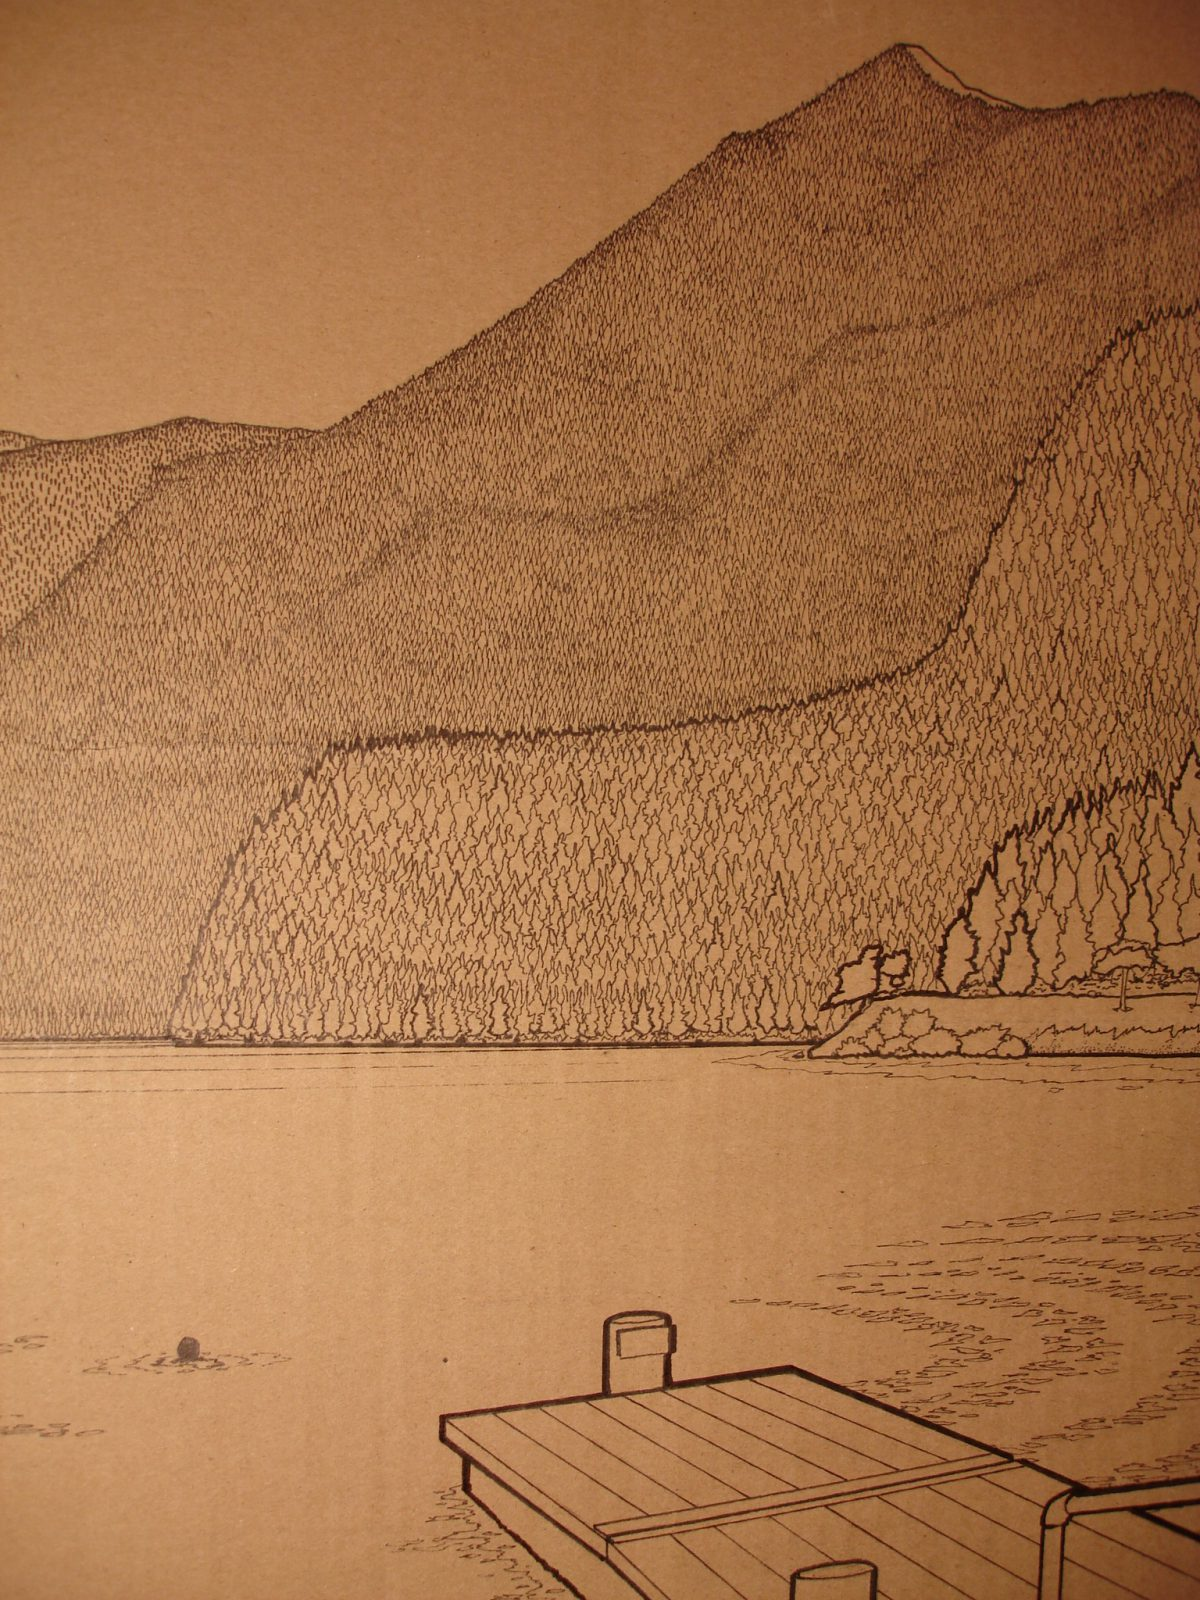 Joe in the lake - 160x67cm markers on containerboard. Detail